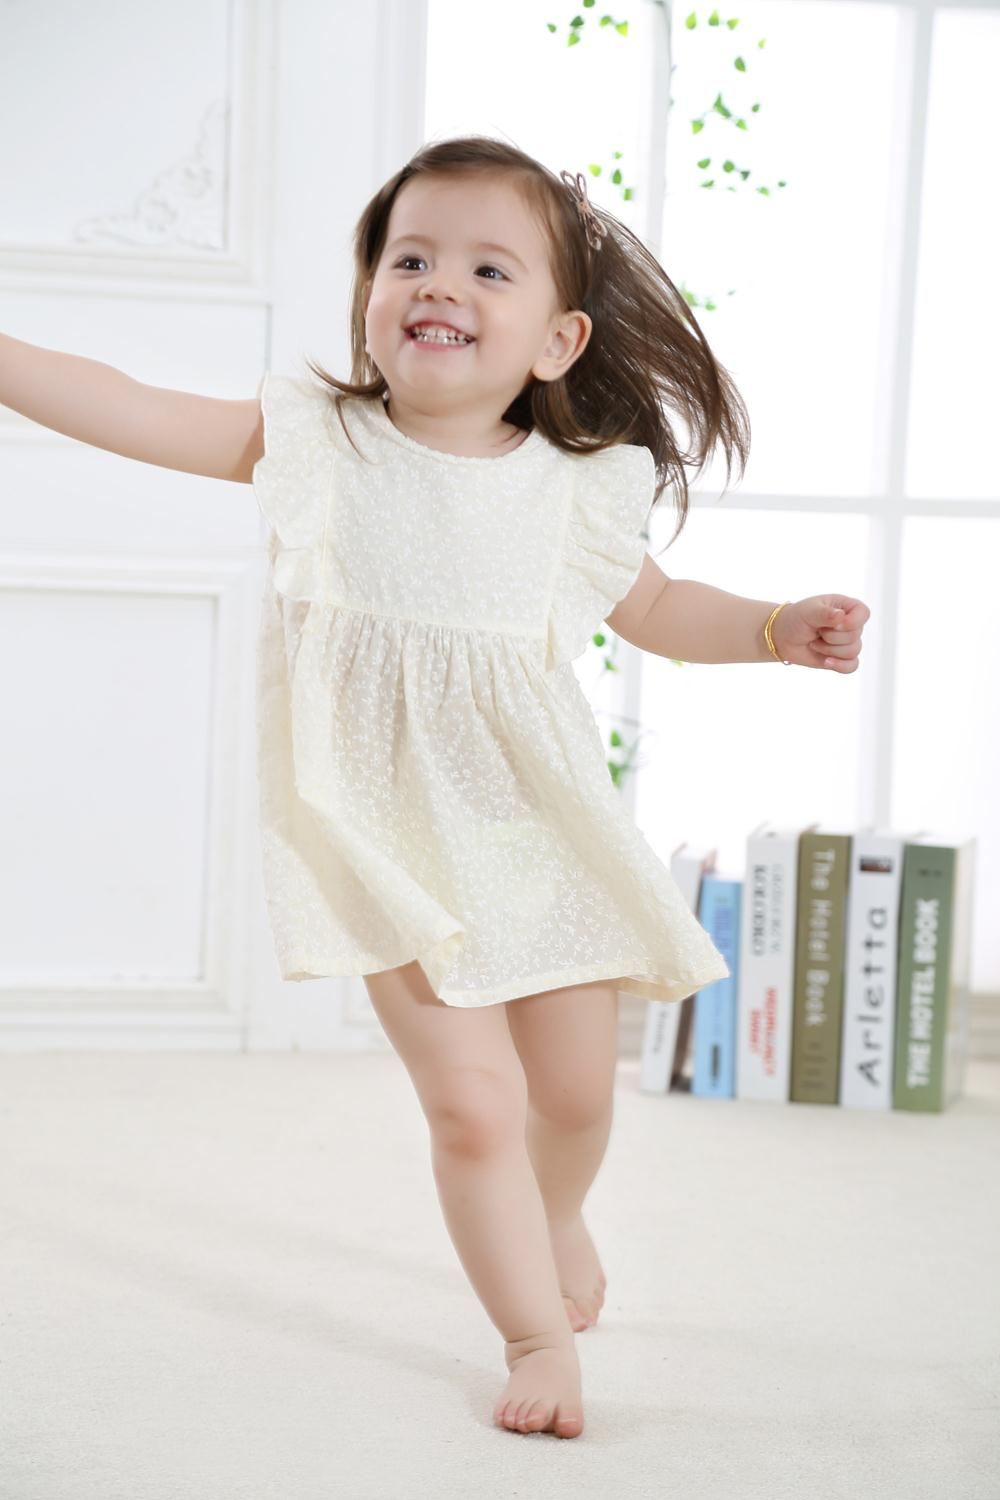 2018 New Fashion Cute Baby Girl Dress Toddler Girls Summer Wear with Printed Flowers in 100% Cotton